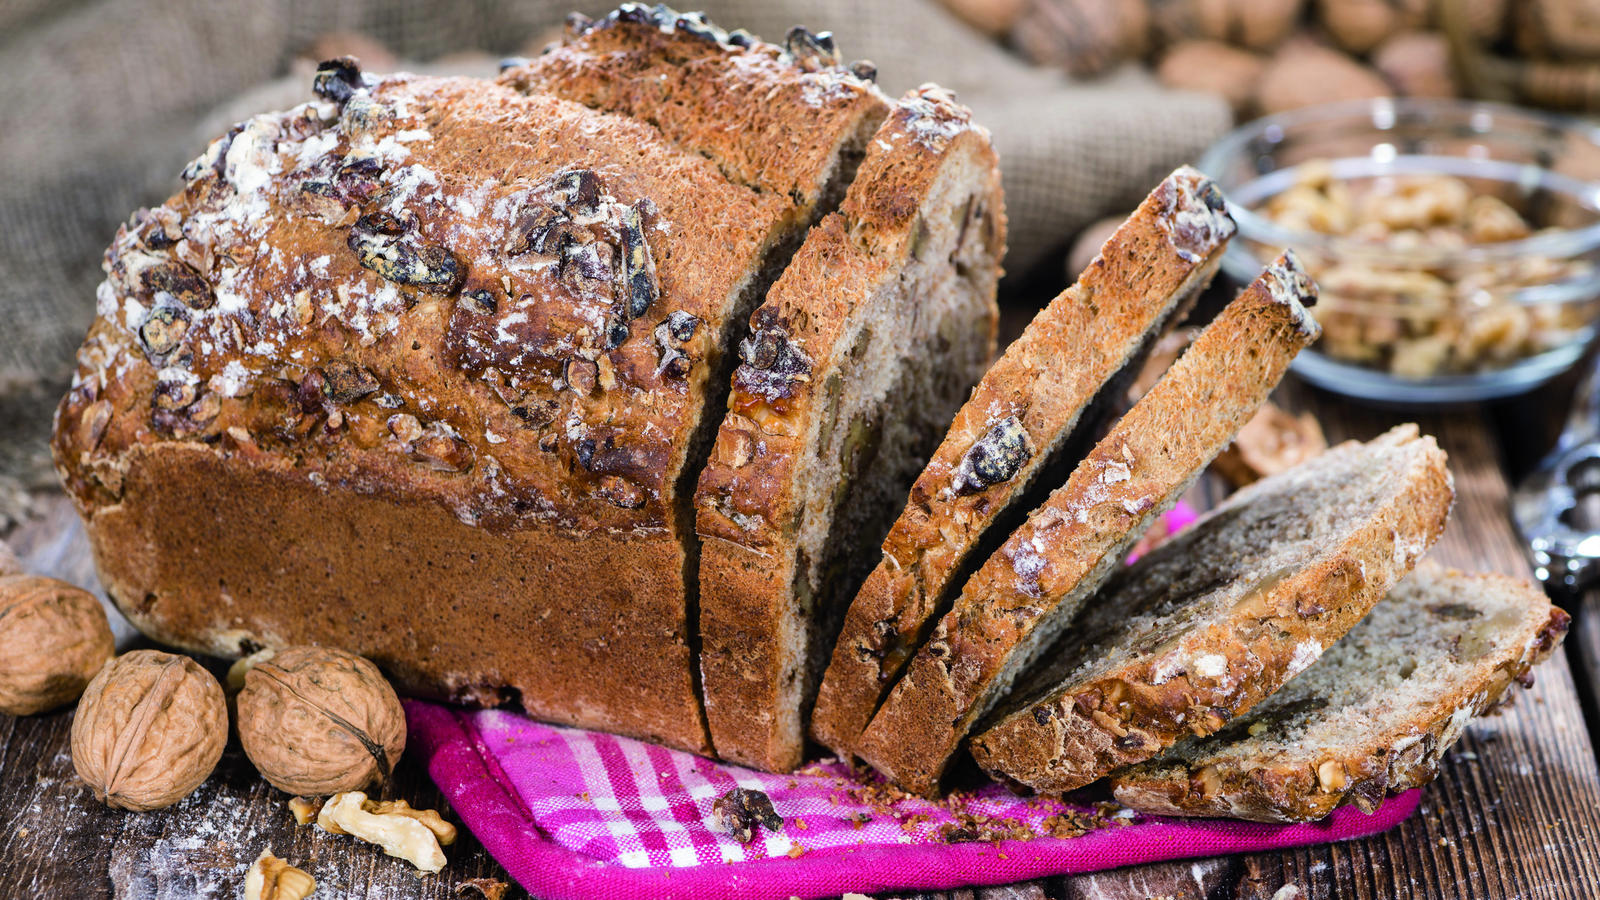 Fresh made Walnut Bread (detailed close-up shot) on wooden background